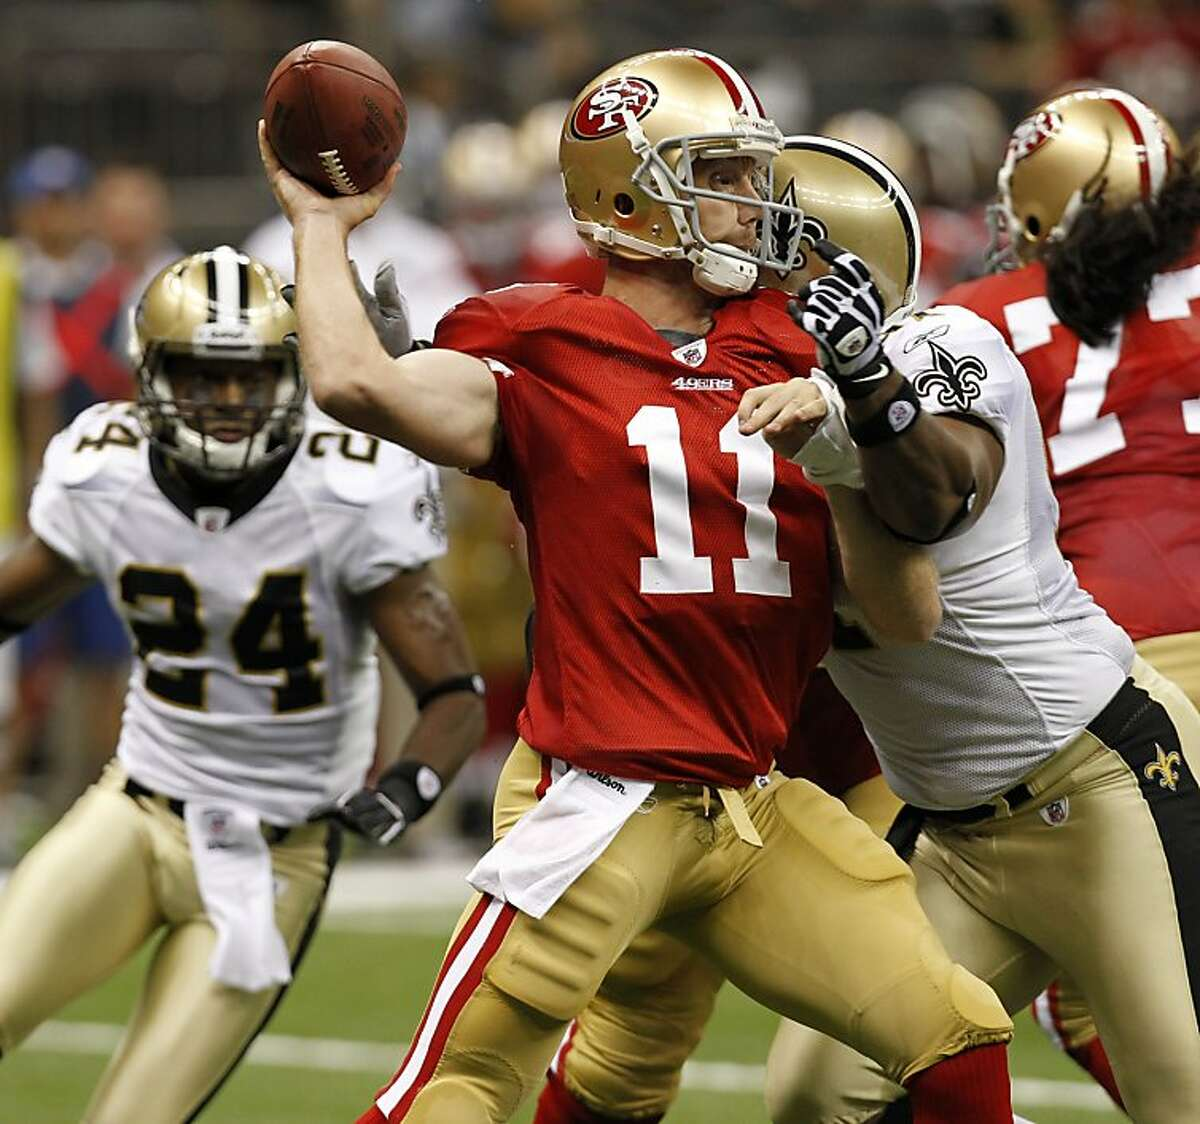 San Francisco 49ers quarterback Alex Smith (11) is hit by New Orleans Saints defensive end Will Smith (91) during the first quarter of an NFL football game at the Louisiana Superdome in New Orleans, Friday, Aug. 12, 2011. (AP Photo/Gerald Herbert)